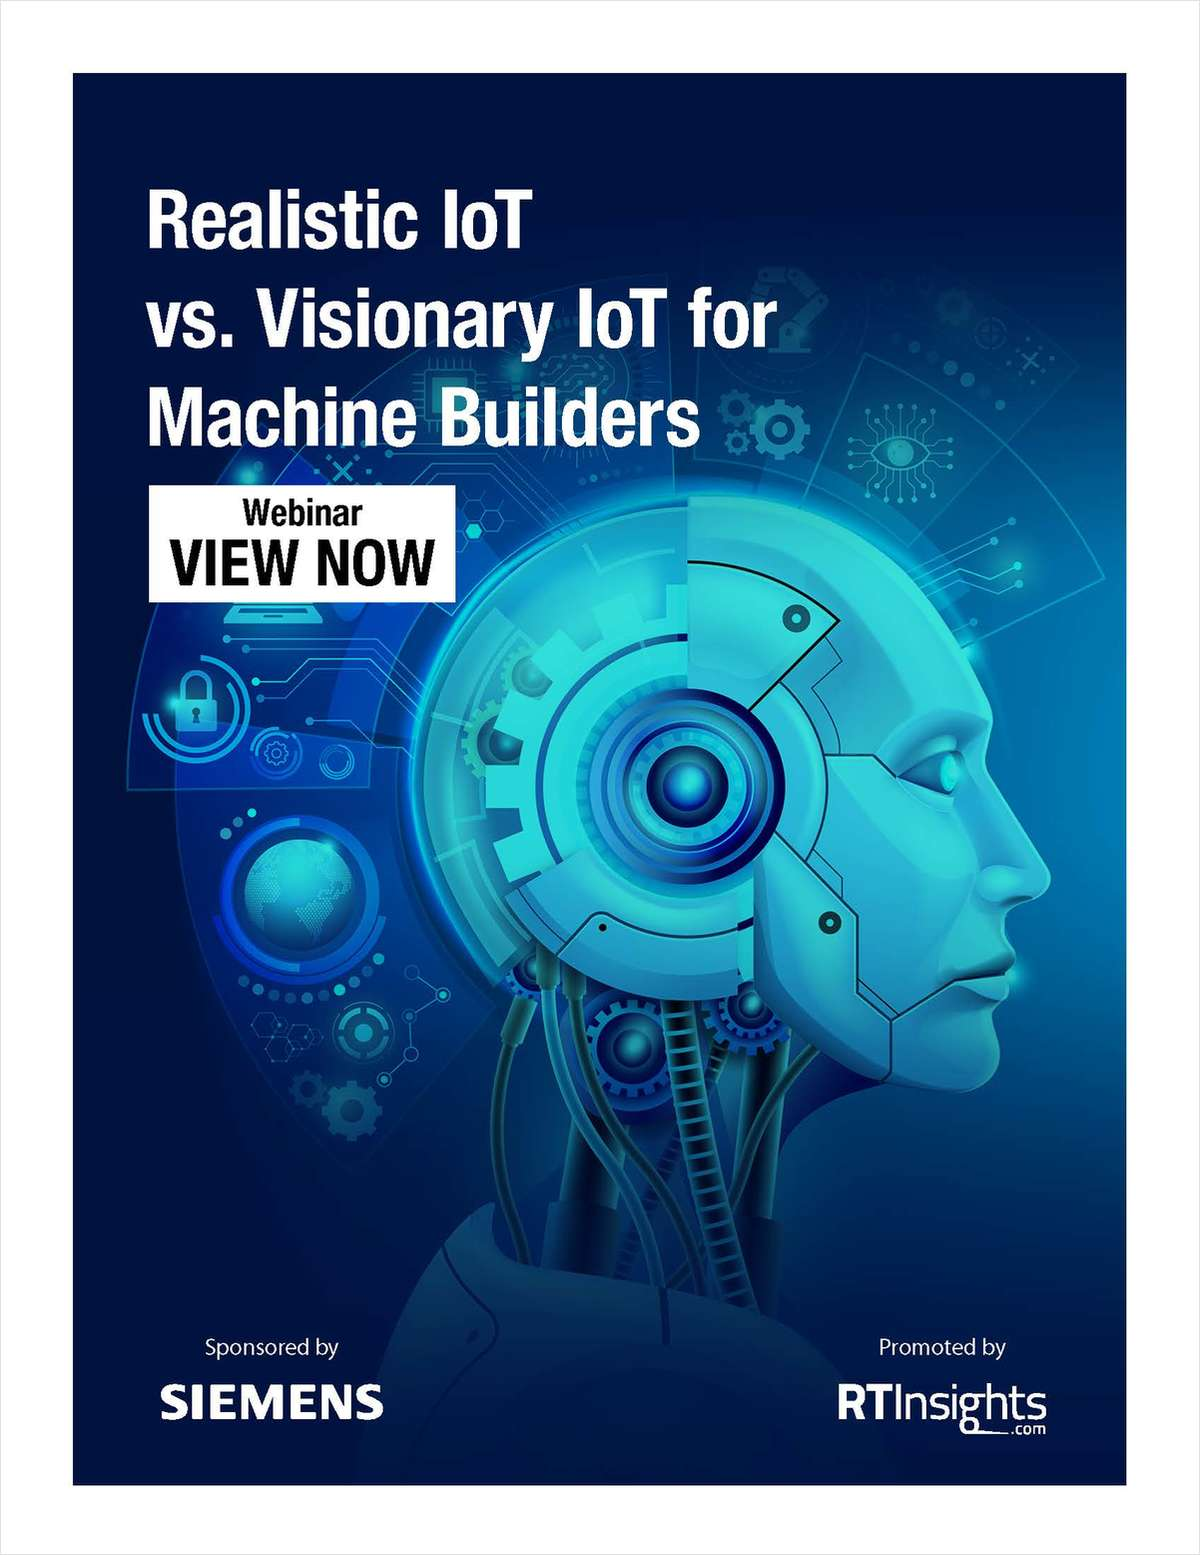 Realistic IoT vs. Visionary IoT for Machine Builders